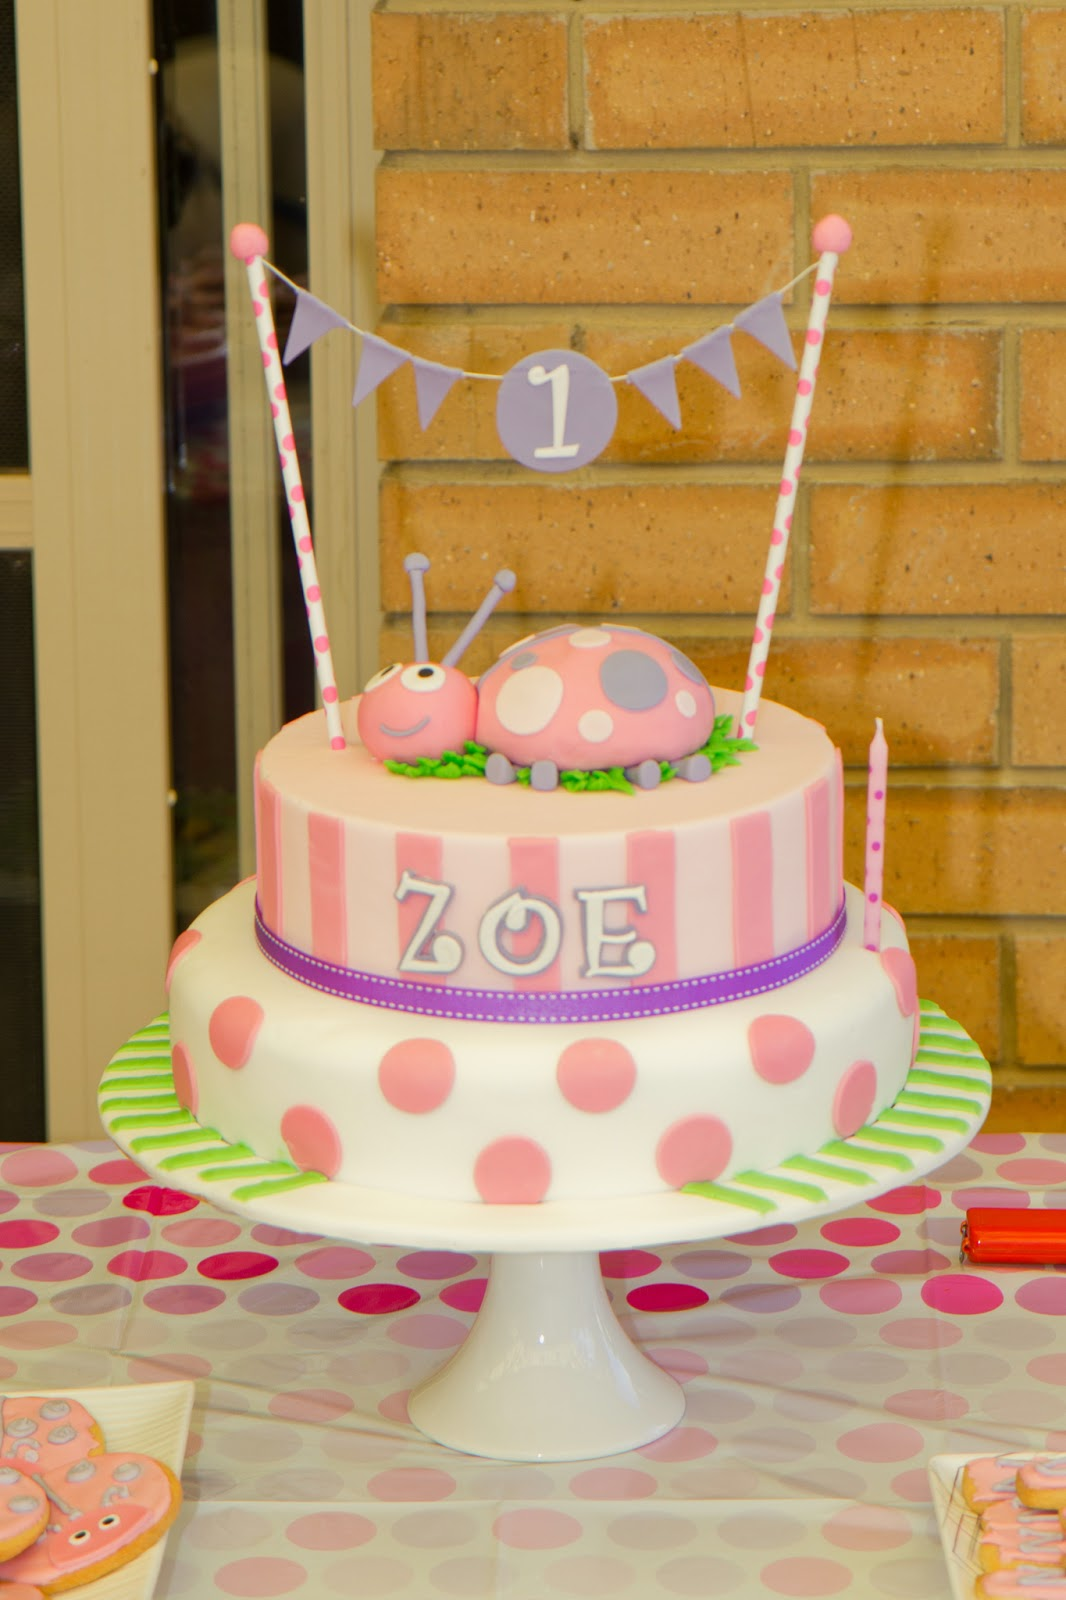 Things By Deb Zoes First Birthday Ladybug Cake